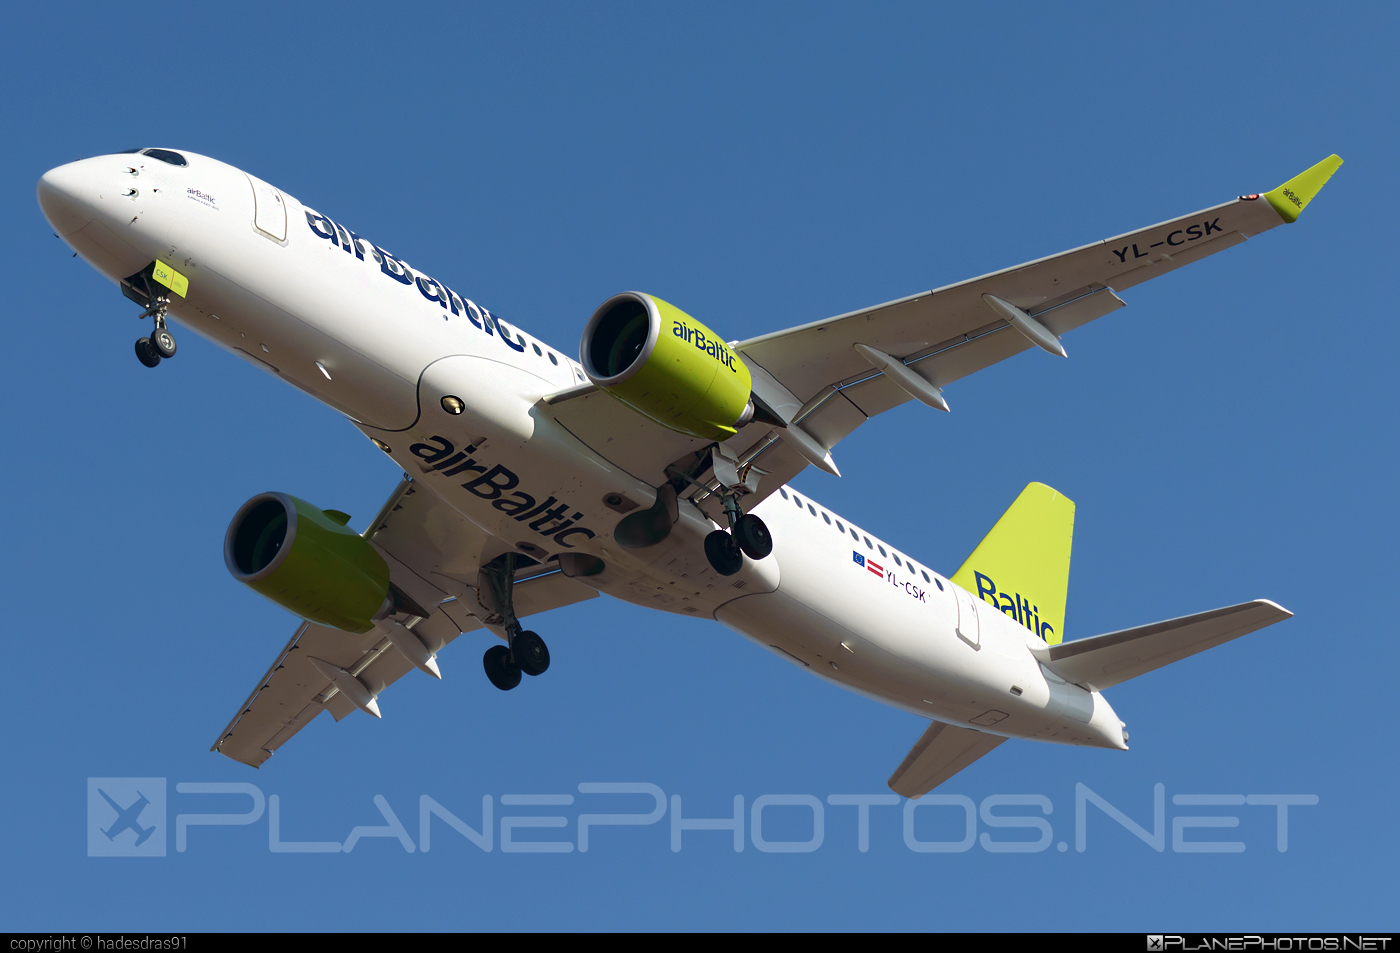 Airbus A220-300 - YL-CSK operated by Air Baltic #a220300 #a220family #airbaltic #airbus #cs300 #cseries #cseries300